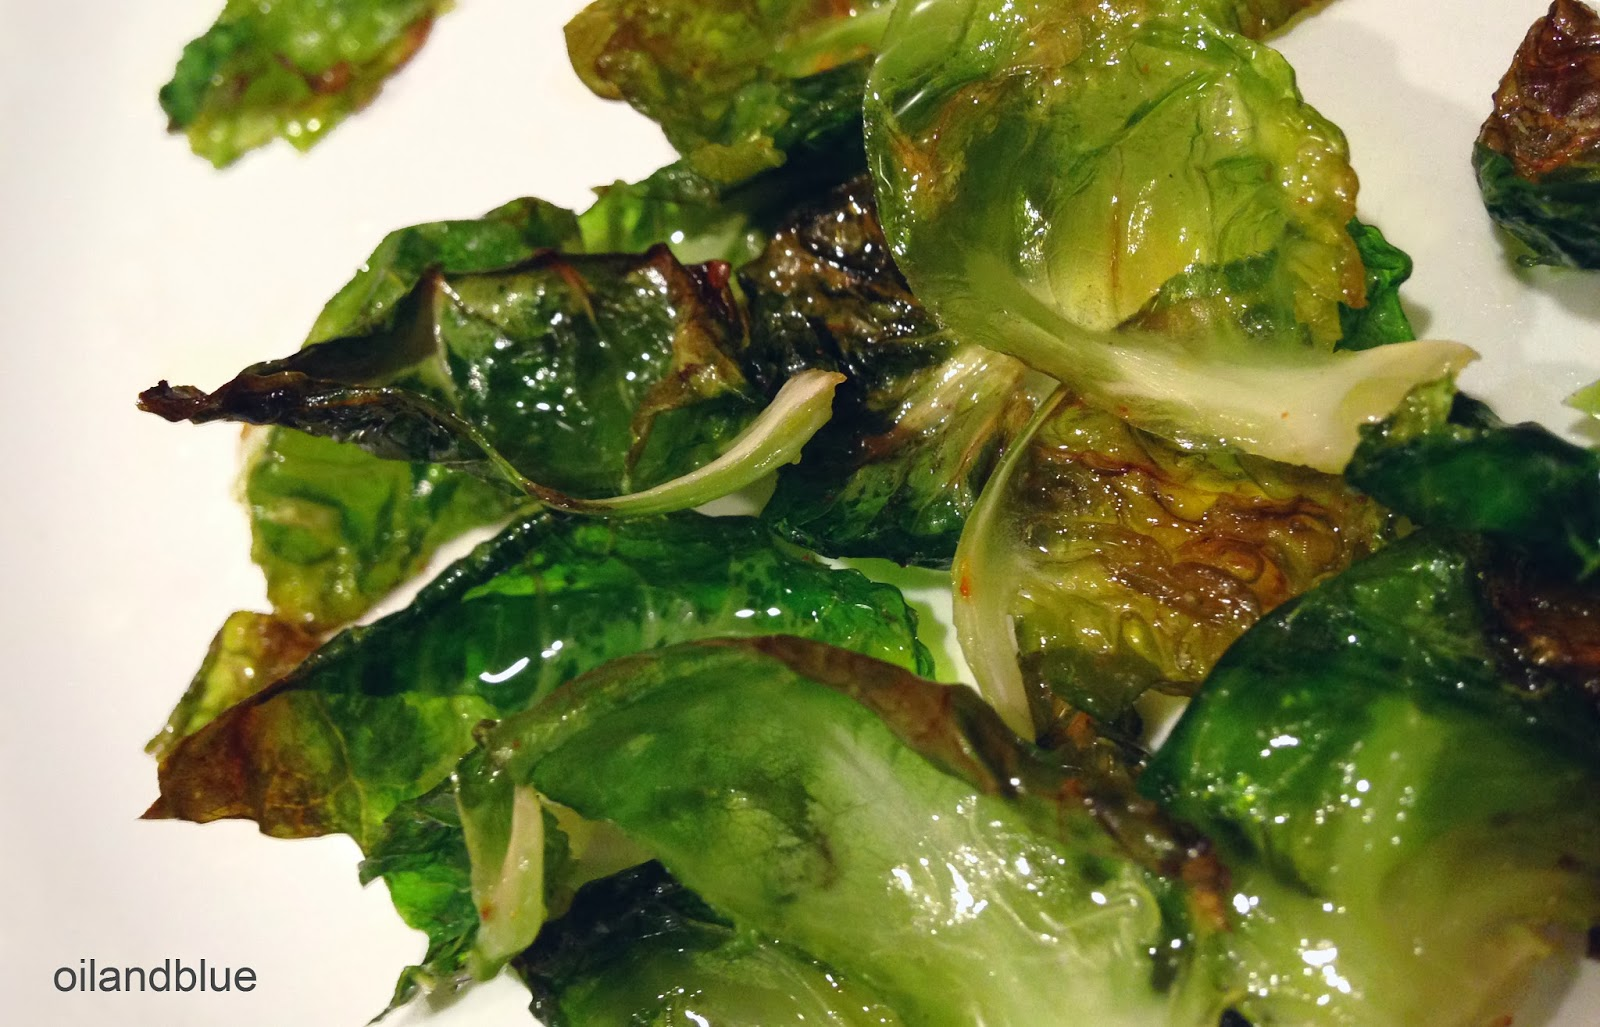 http://oilandblue.blogspot.com/2013/12/these-are-so-much-better-than-kale-chips.html